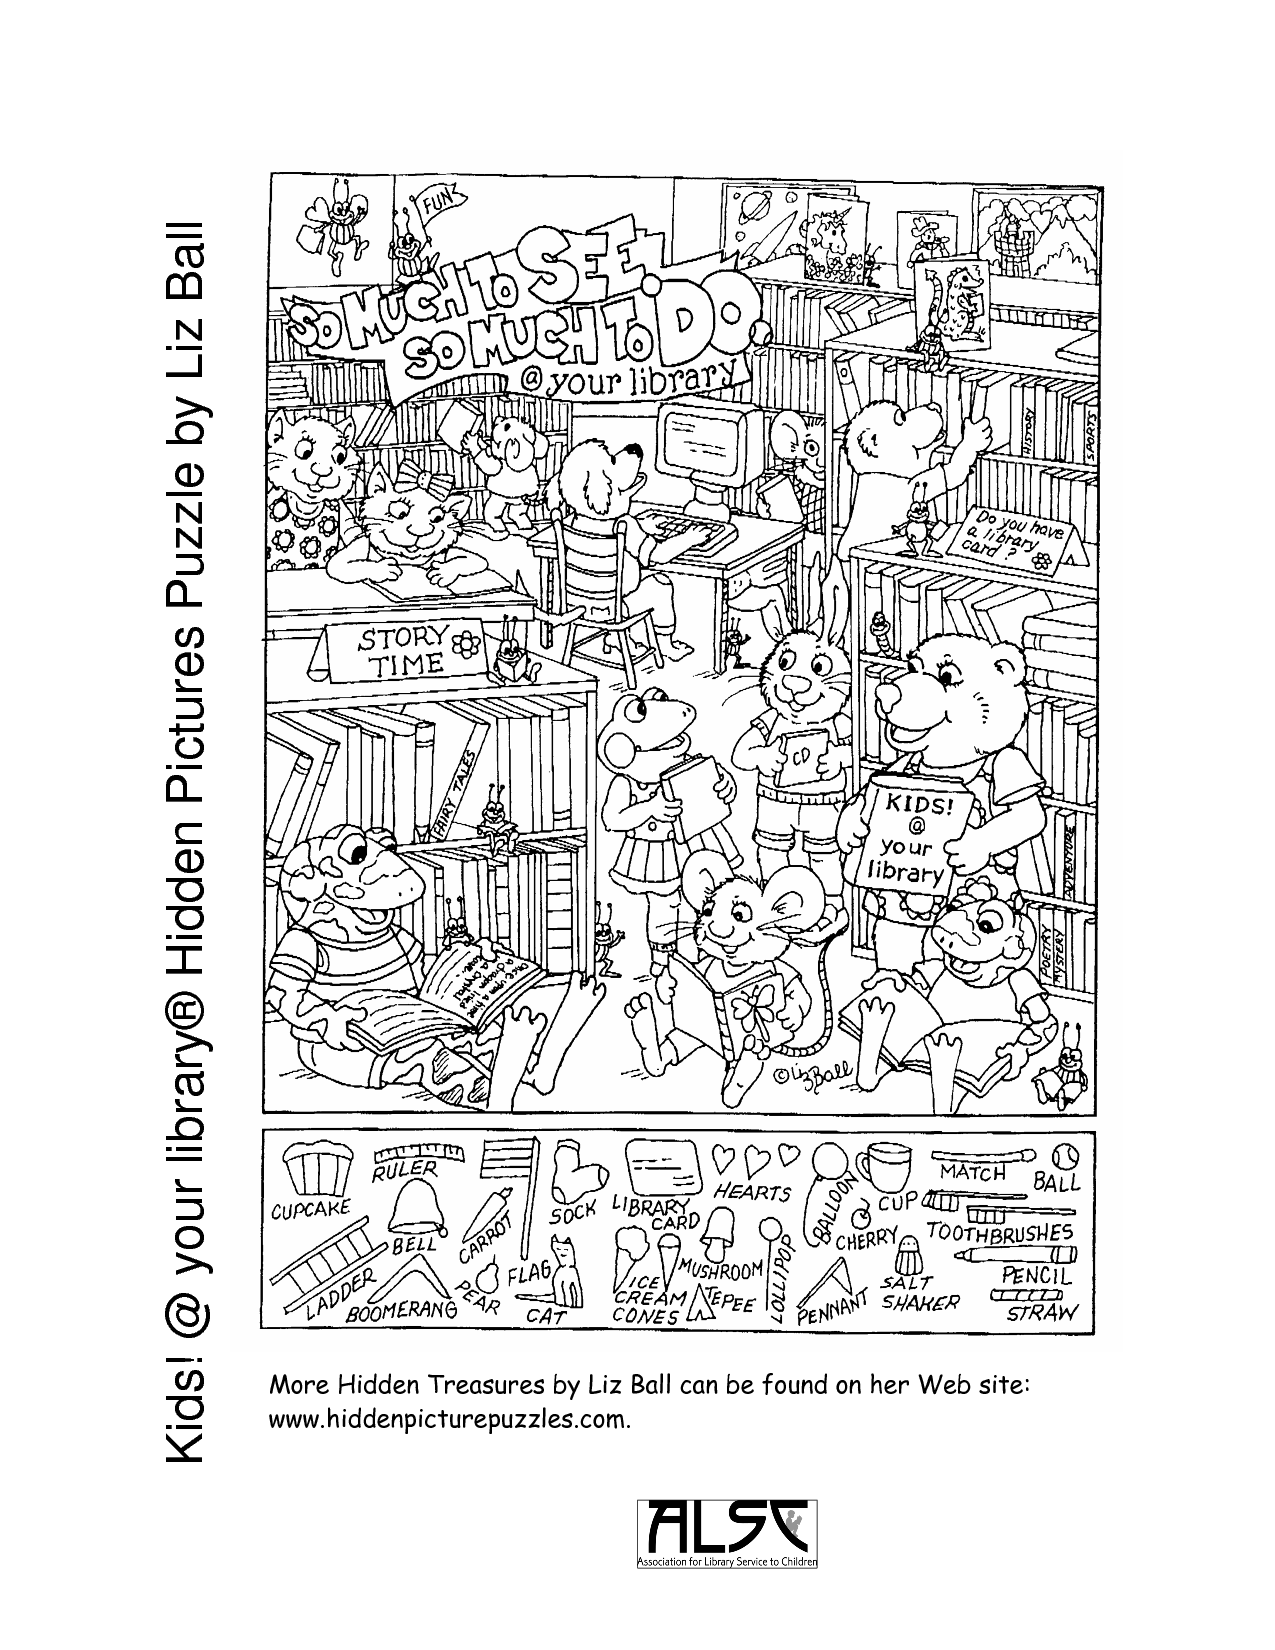 printable puzzles for adults Kids your library® Hidden